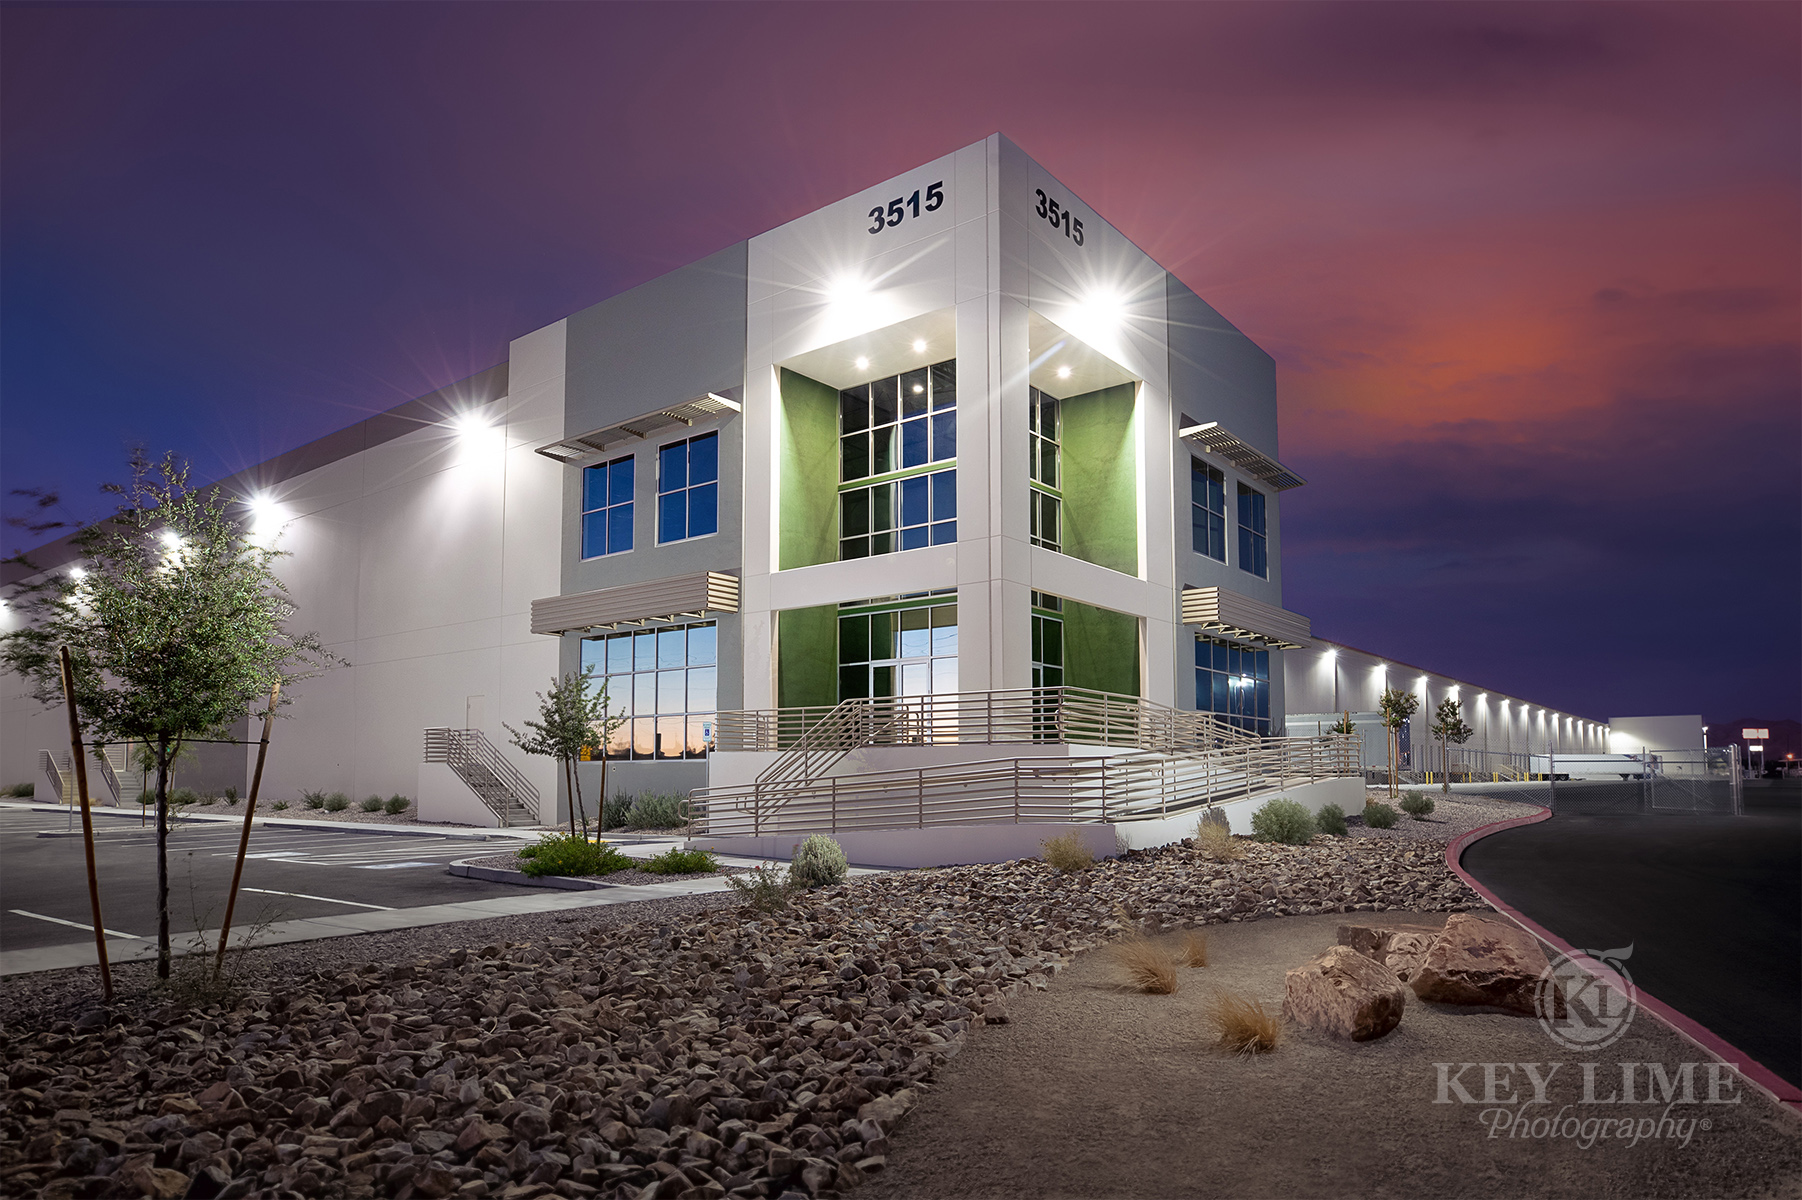 Commercial architecture photographer image of white and green warehouse against a magenta sunset.